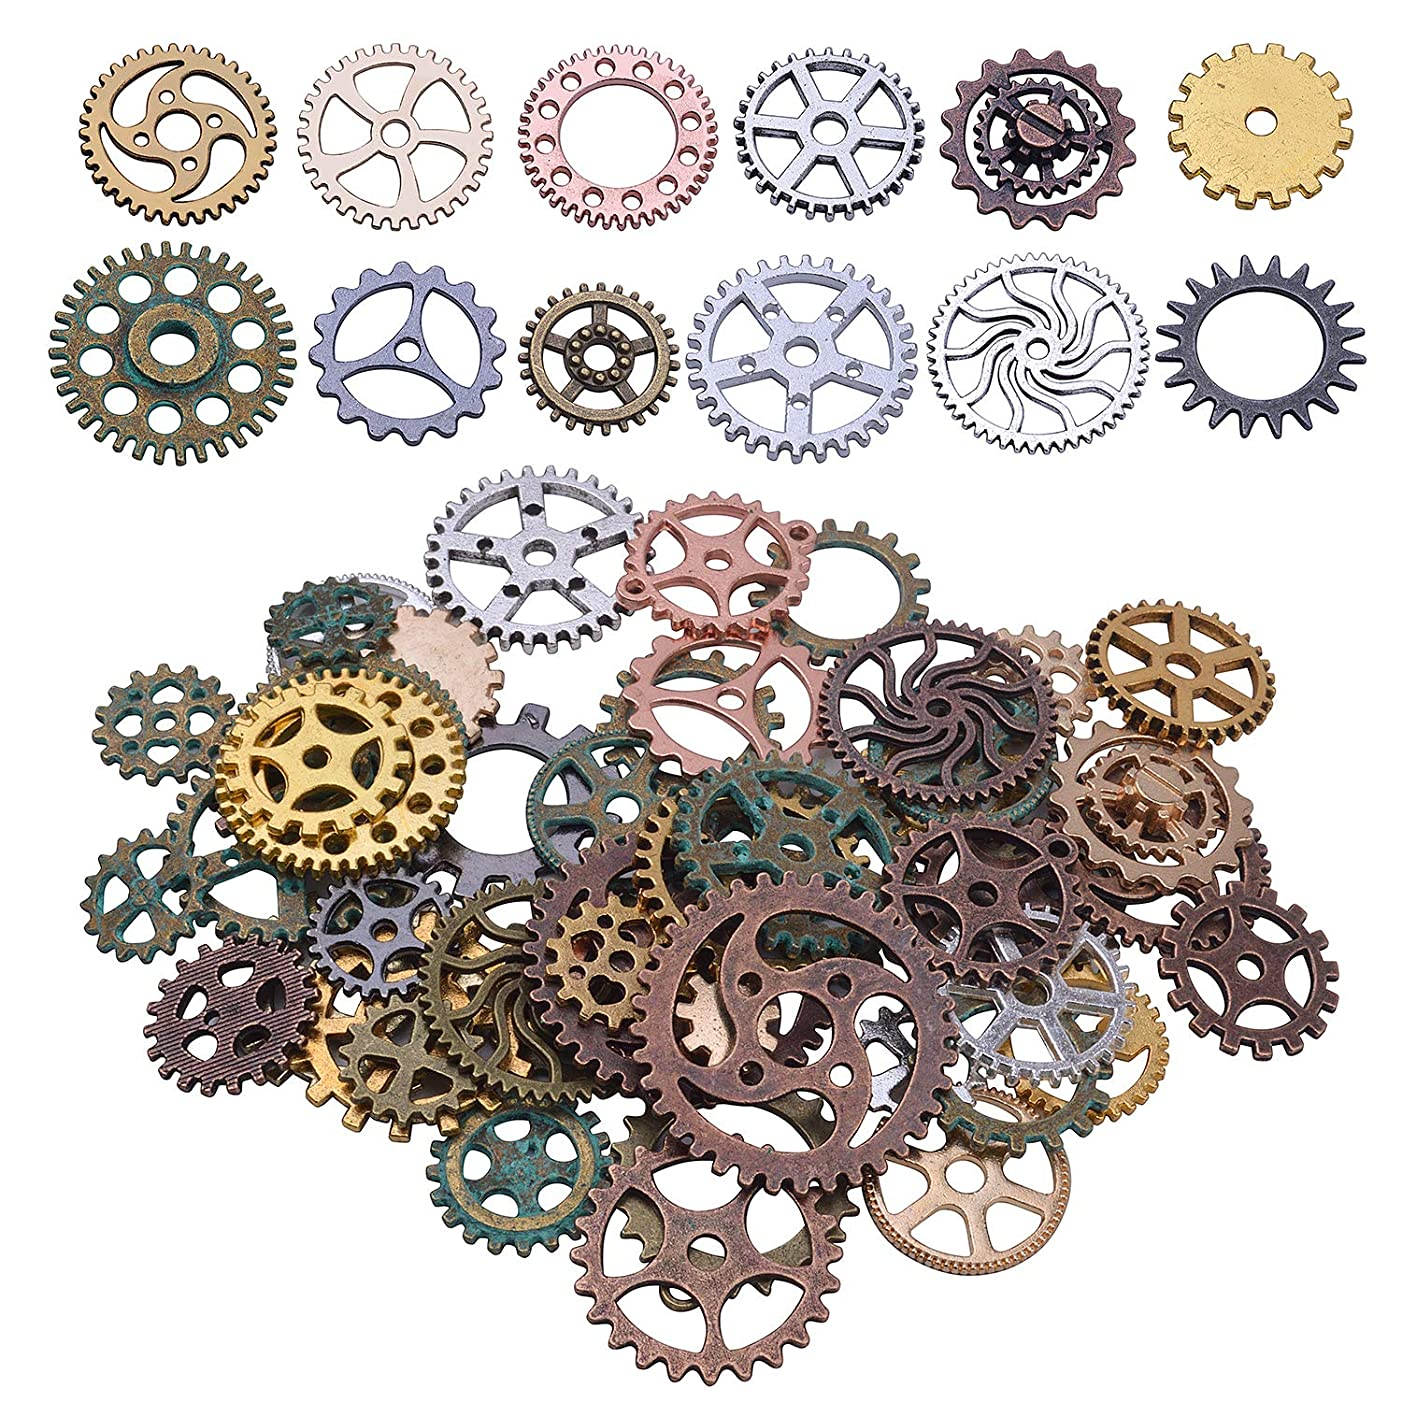 Jdesun 120g Assorted Steampunk Gears Charms Pendant Clock Watch Wheel Gear for Crafting, DIY Jewelry (Mixed 12 Colors)